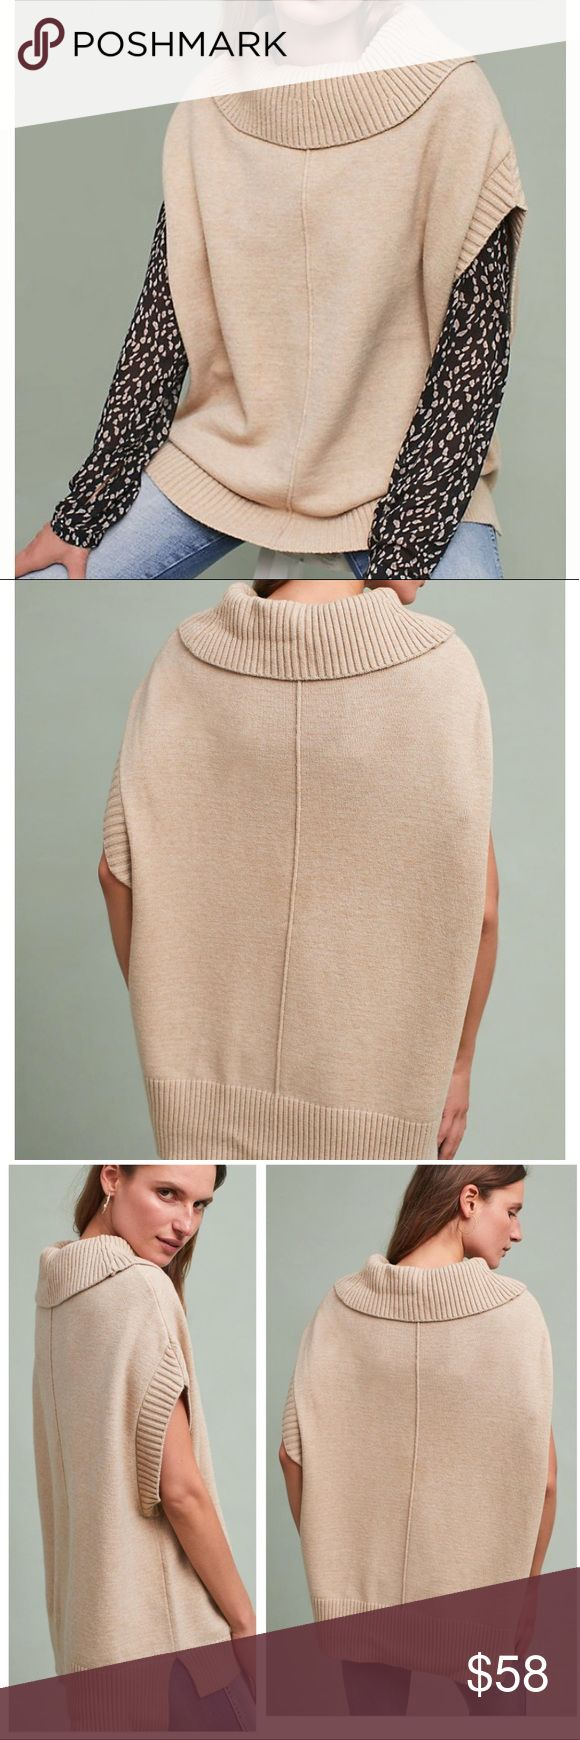 moth sweater • anthropologie brand new with tags ❤️ so incredibly soft and flattering. acrylic/poly/spandex mix 😍 Anthropologie Sweaters